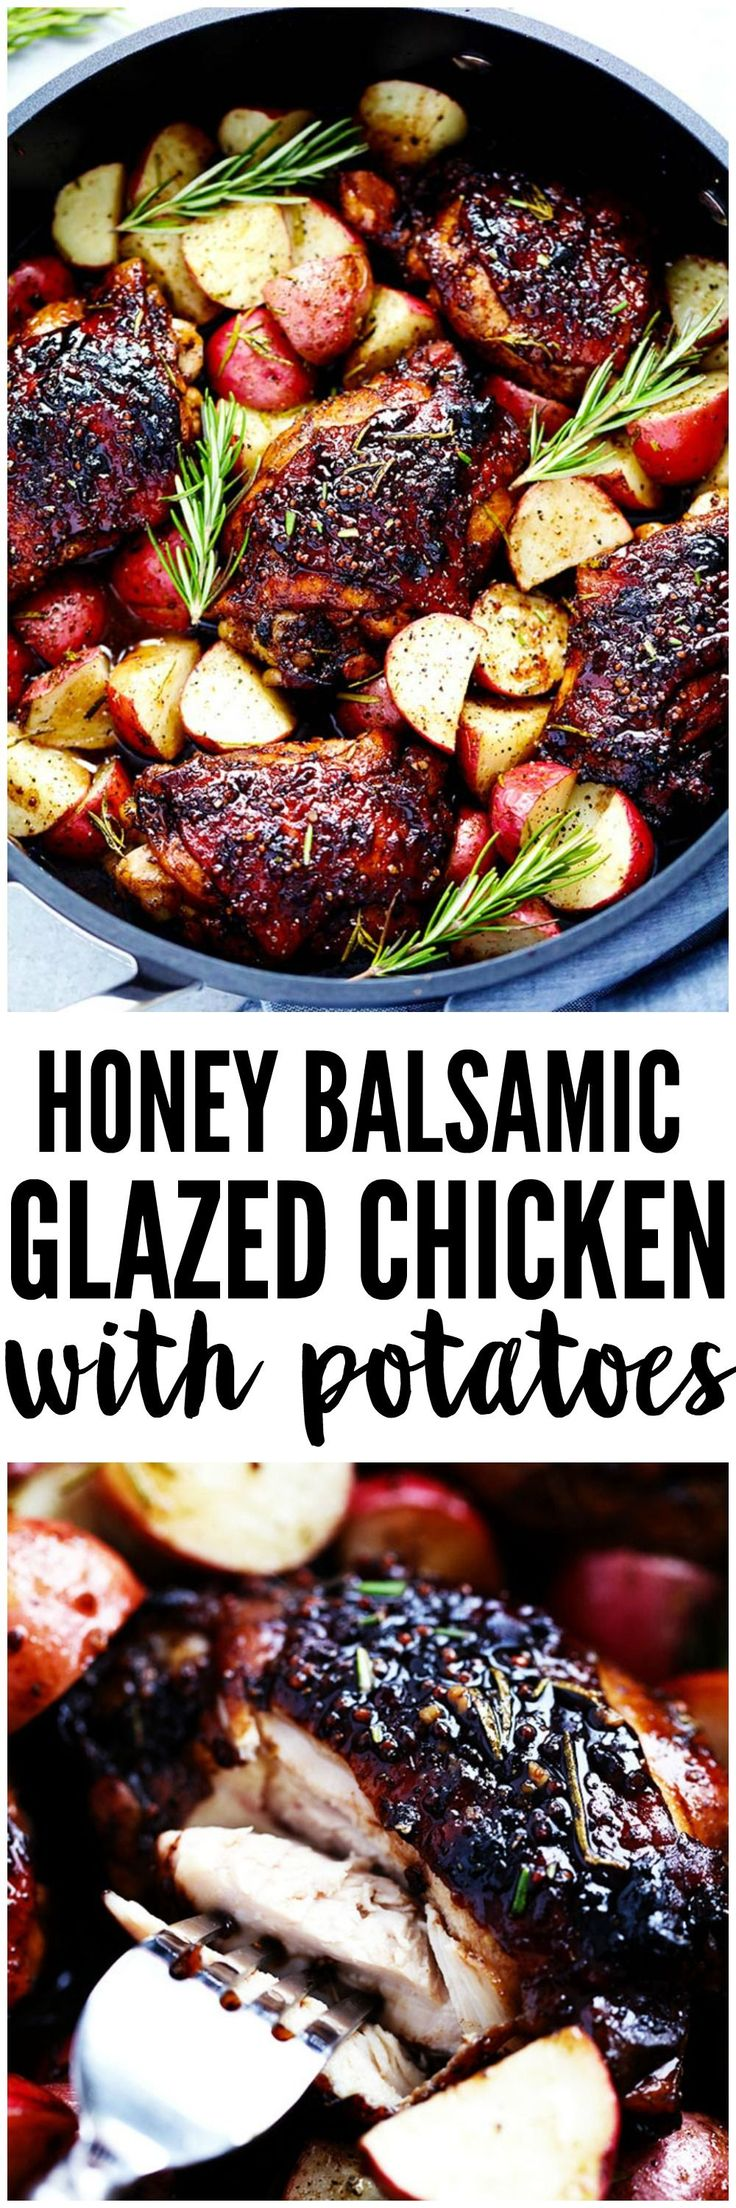 ***Glazed Honey Balsamic Chicken with Potatoes ~ is a one pan meal with tender and juicy chicken glazed in a sweet and tangy honey balsamic sauce. Surrounded by crisp and tender potatoes this is one delicious meal!